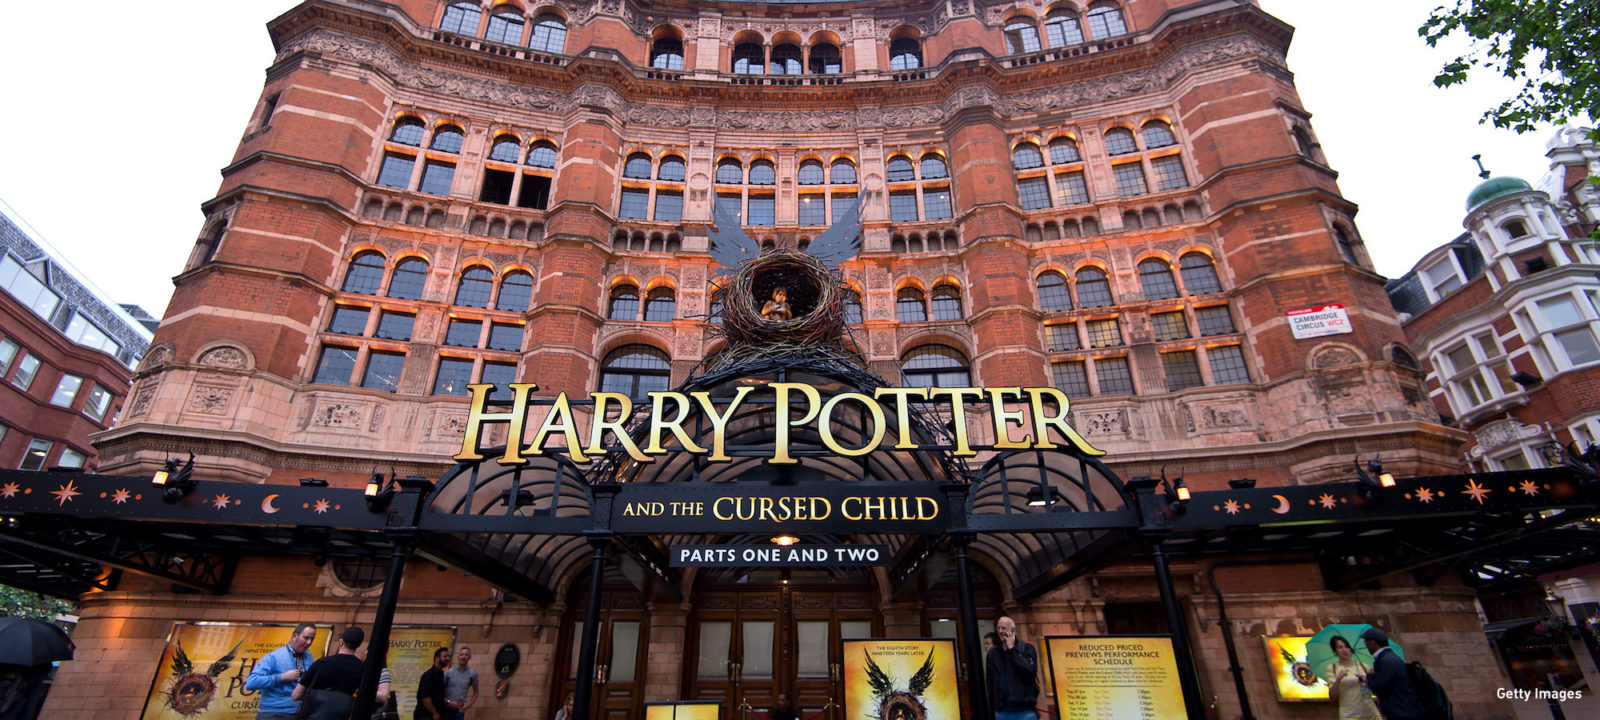 "A general view of The Palace Theatre as previews start today for ""Harry Potter and the Cursed Child"" on June 7, 2016 in London, United Kingdom. The play has a sold out run until May 2017 with fans expected to fly to London from all over the world to see it."